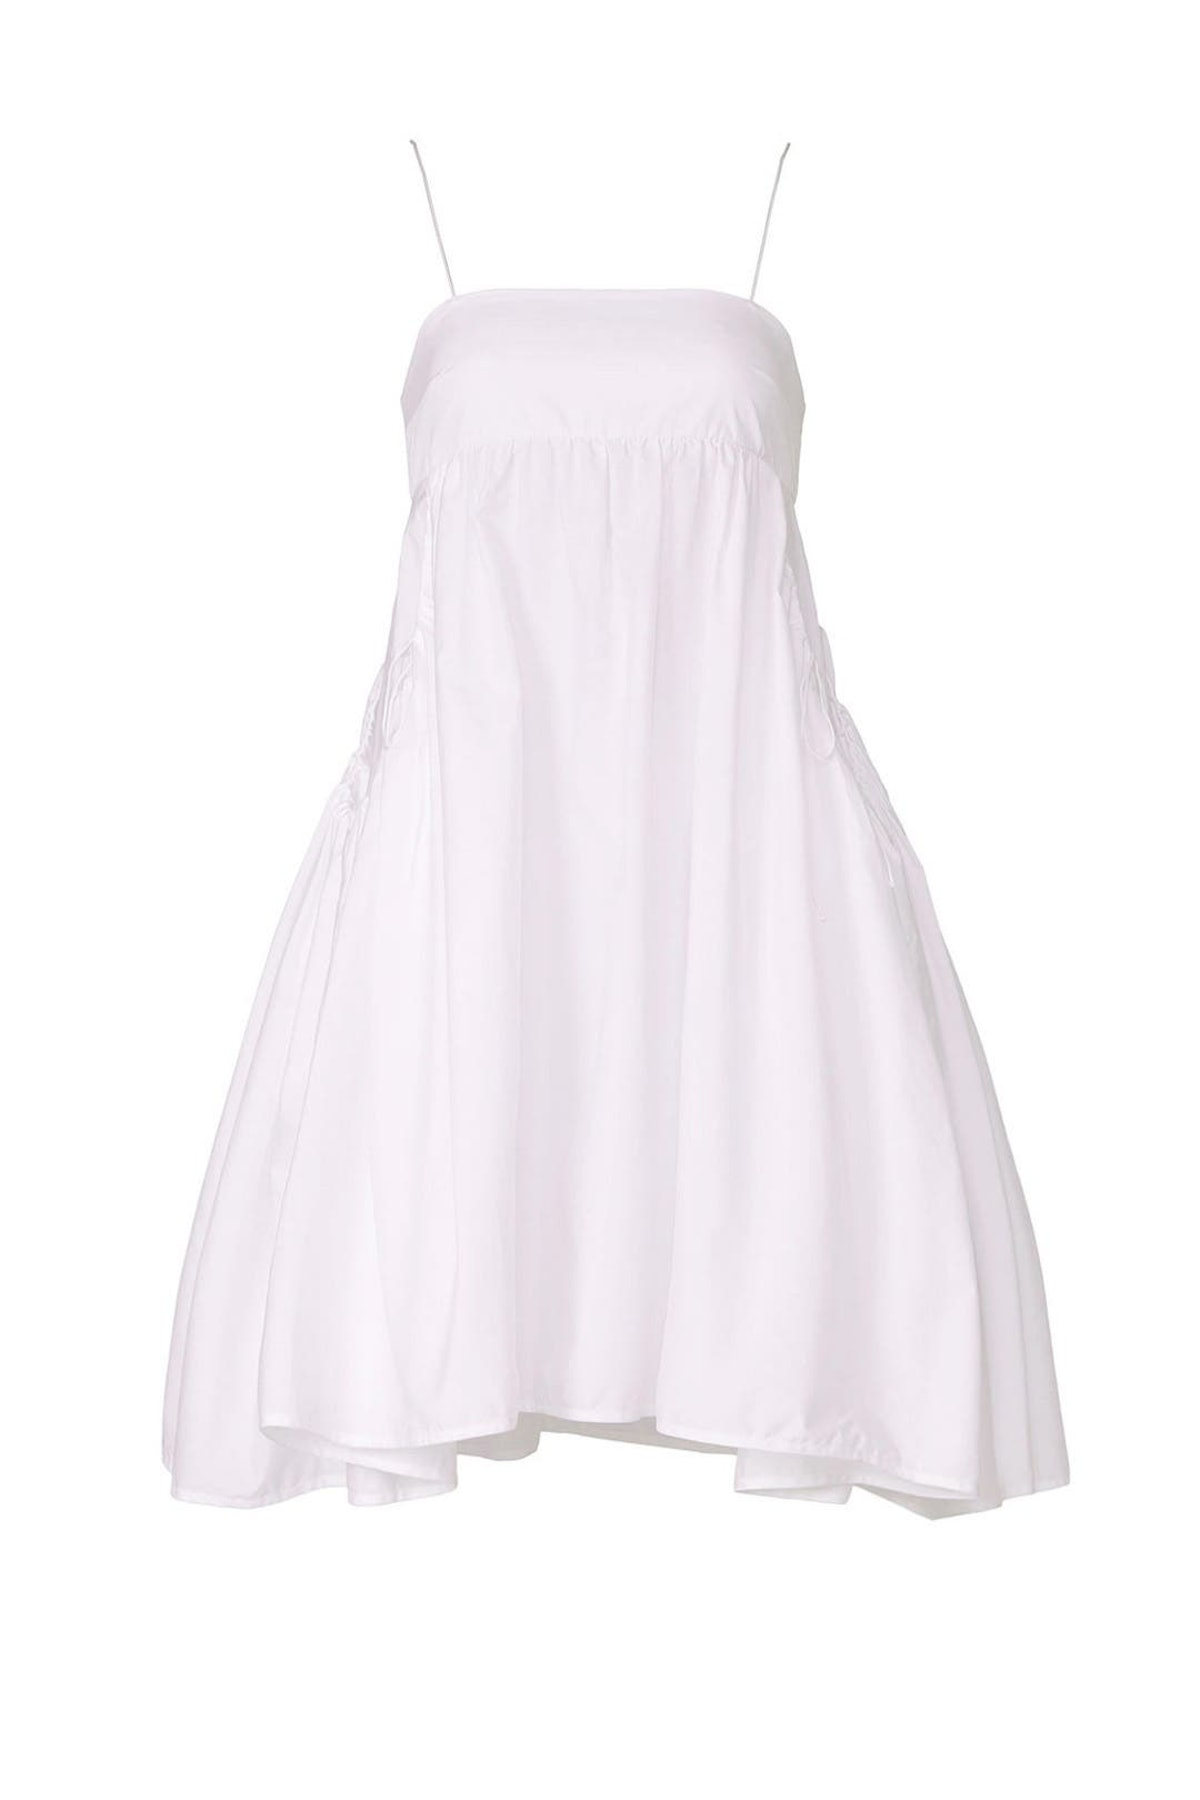 White Lisbeth mini dress from Cecilie Bahnsen, available to shop or rent via Rent The Runway.